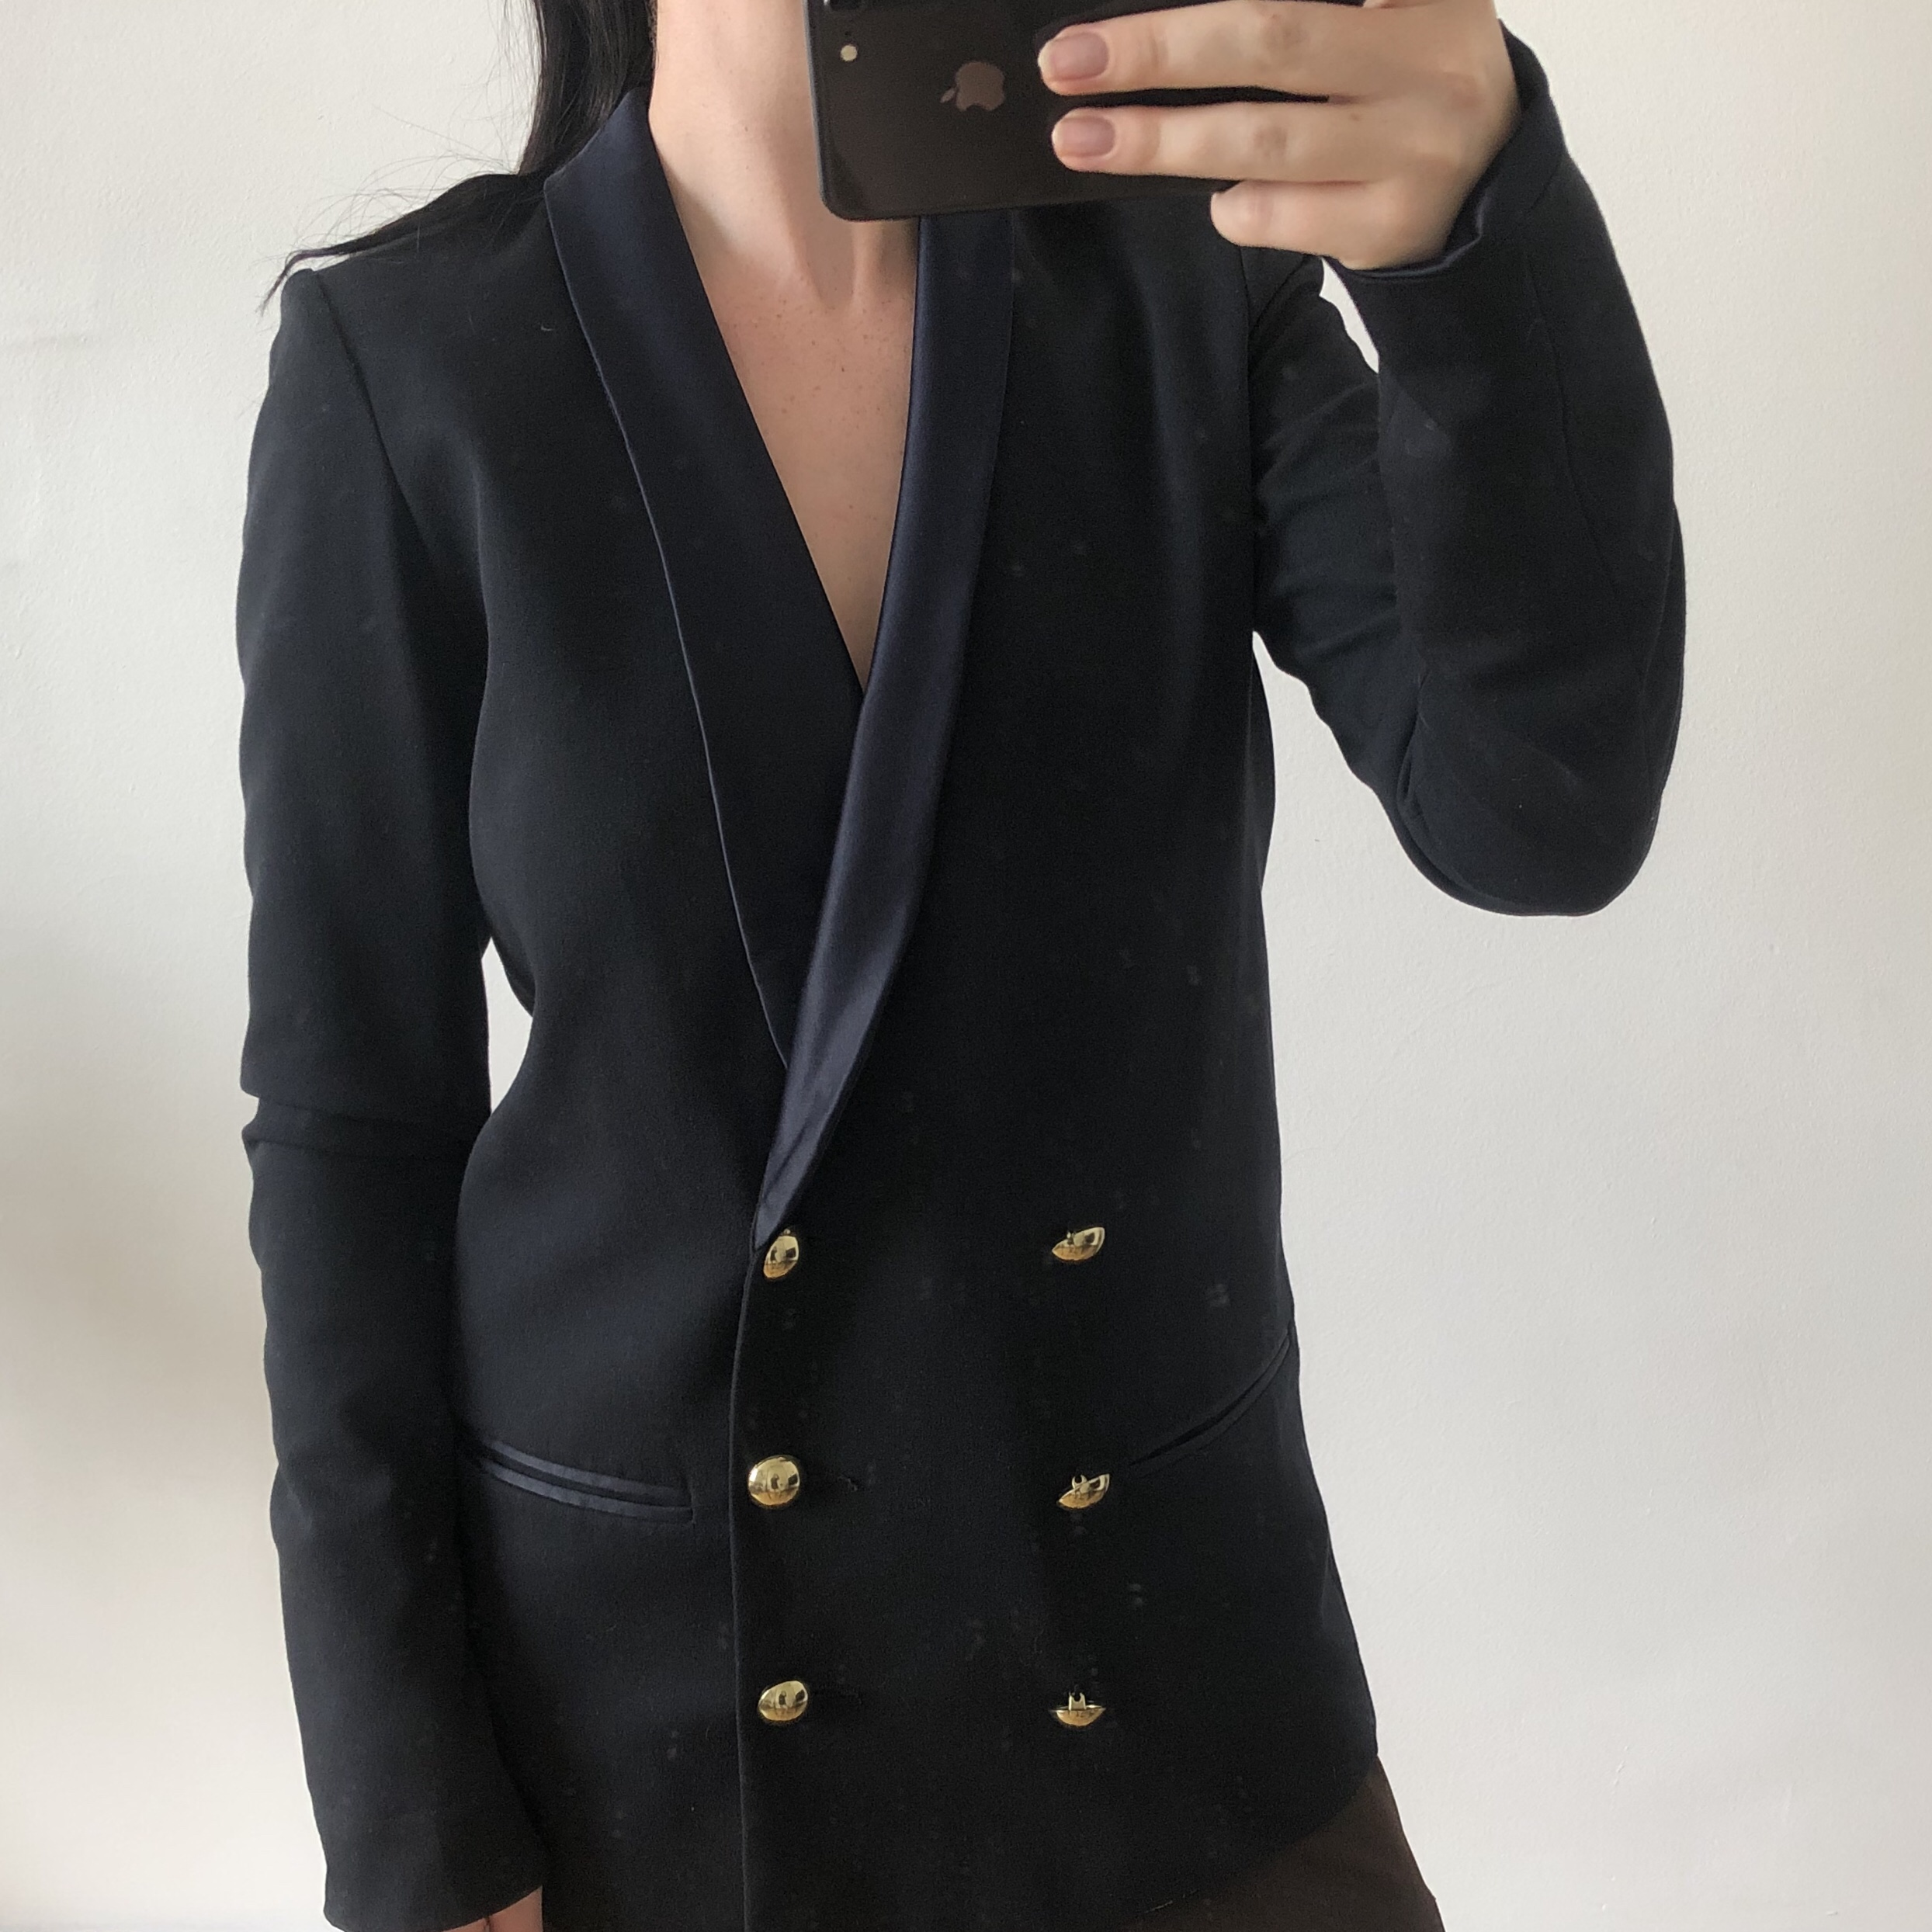 Navy blazer with gold buttons - Depop